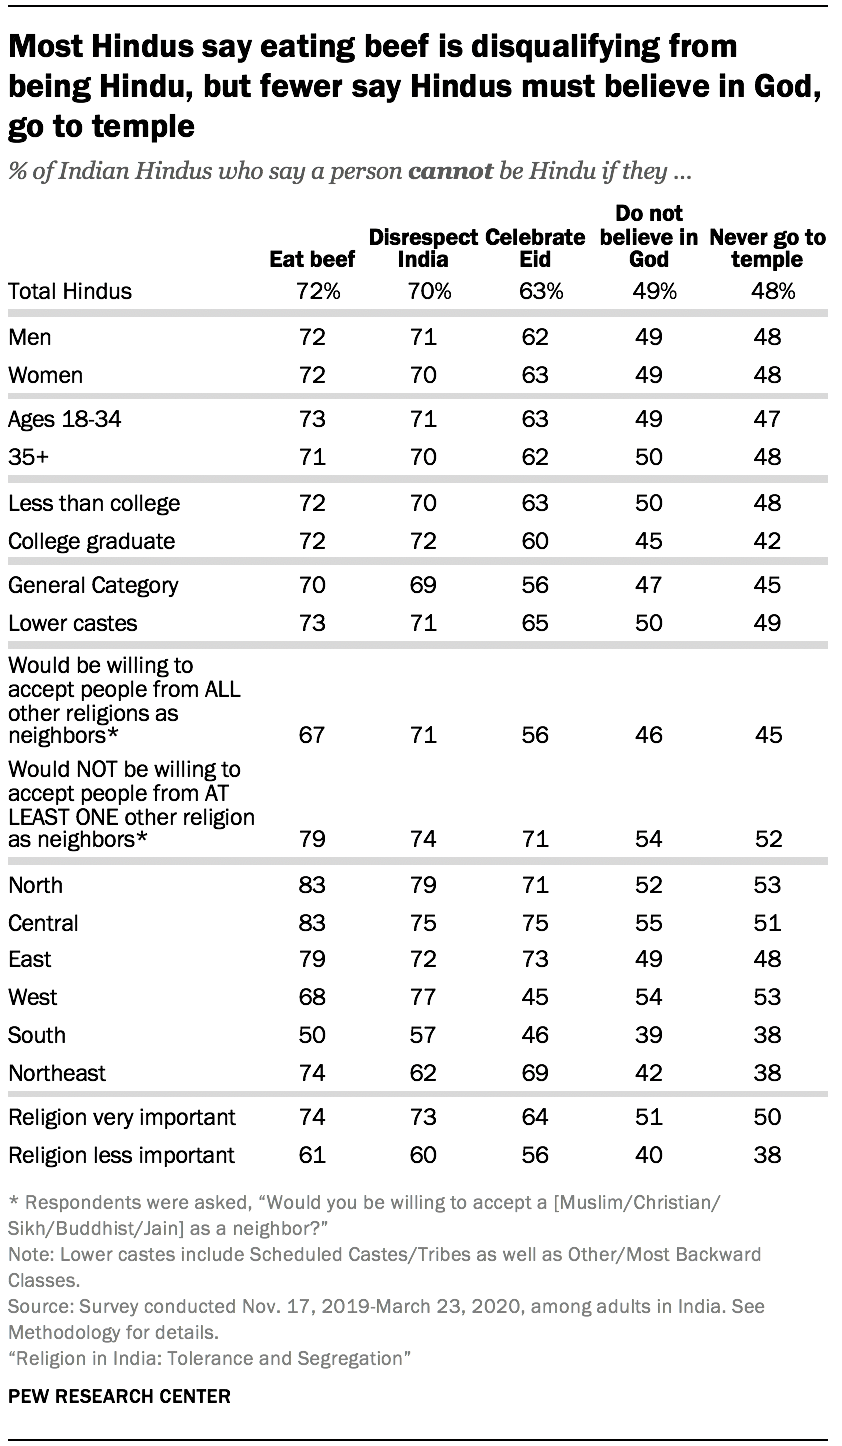 Most Hindus say eating beef is disqualifying from being Hindu, but fewer say Hindus must believe in God, go to temple